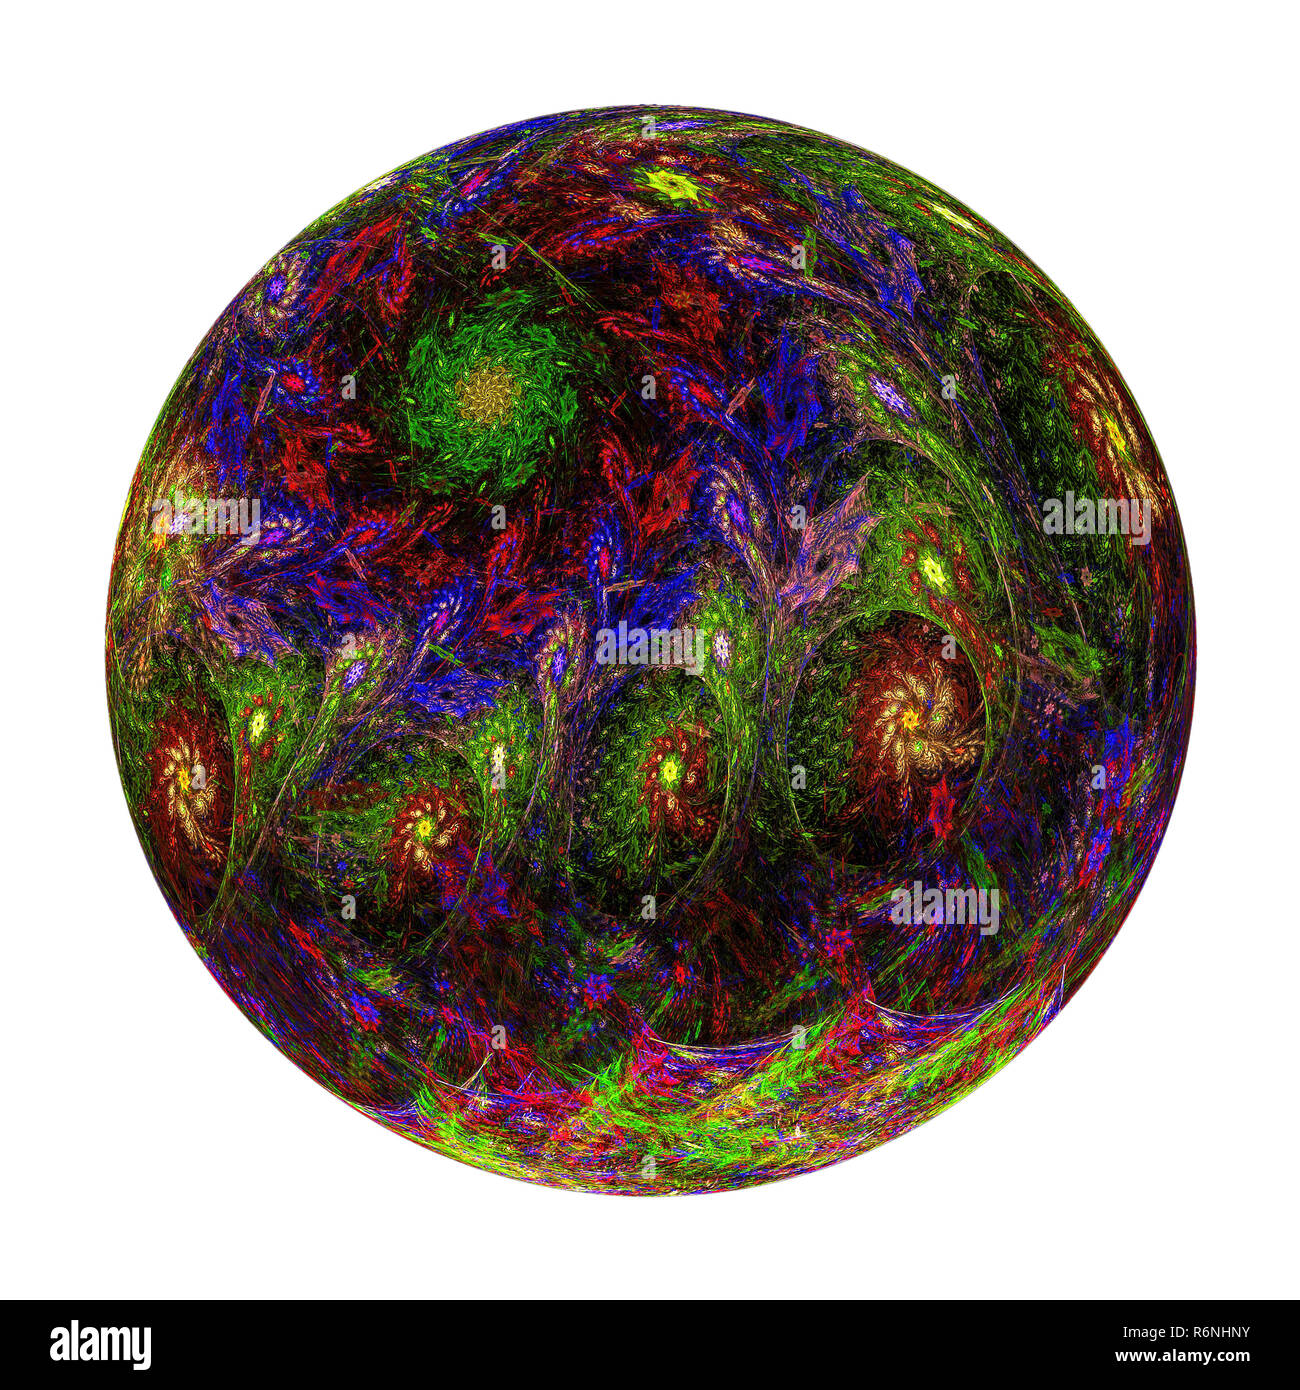 Abstract fractal ball with pattern - digitally generated image - Stock Image